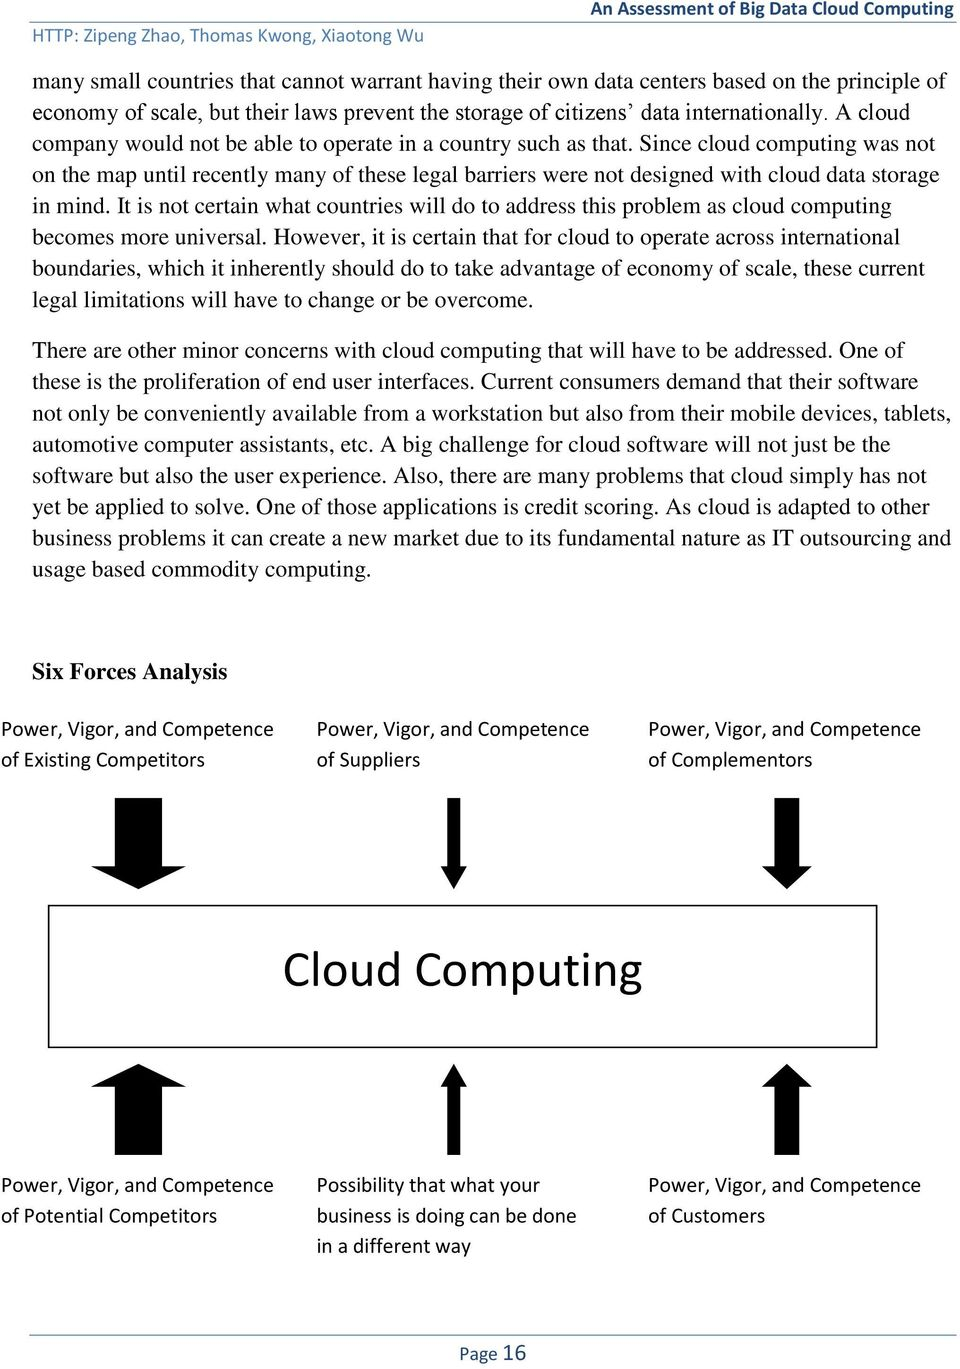 Since cloud computing was not on the map until recently many of these legal barriers were not designed with cloud data storage in mind.